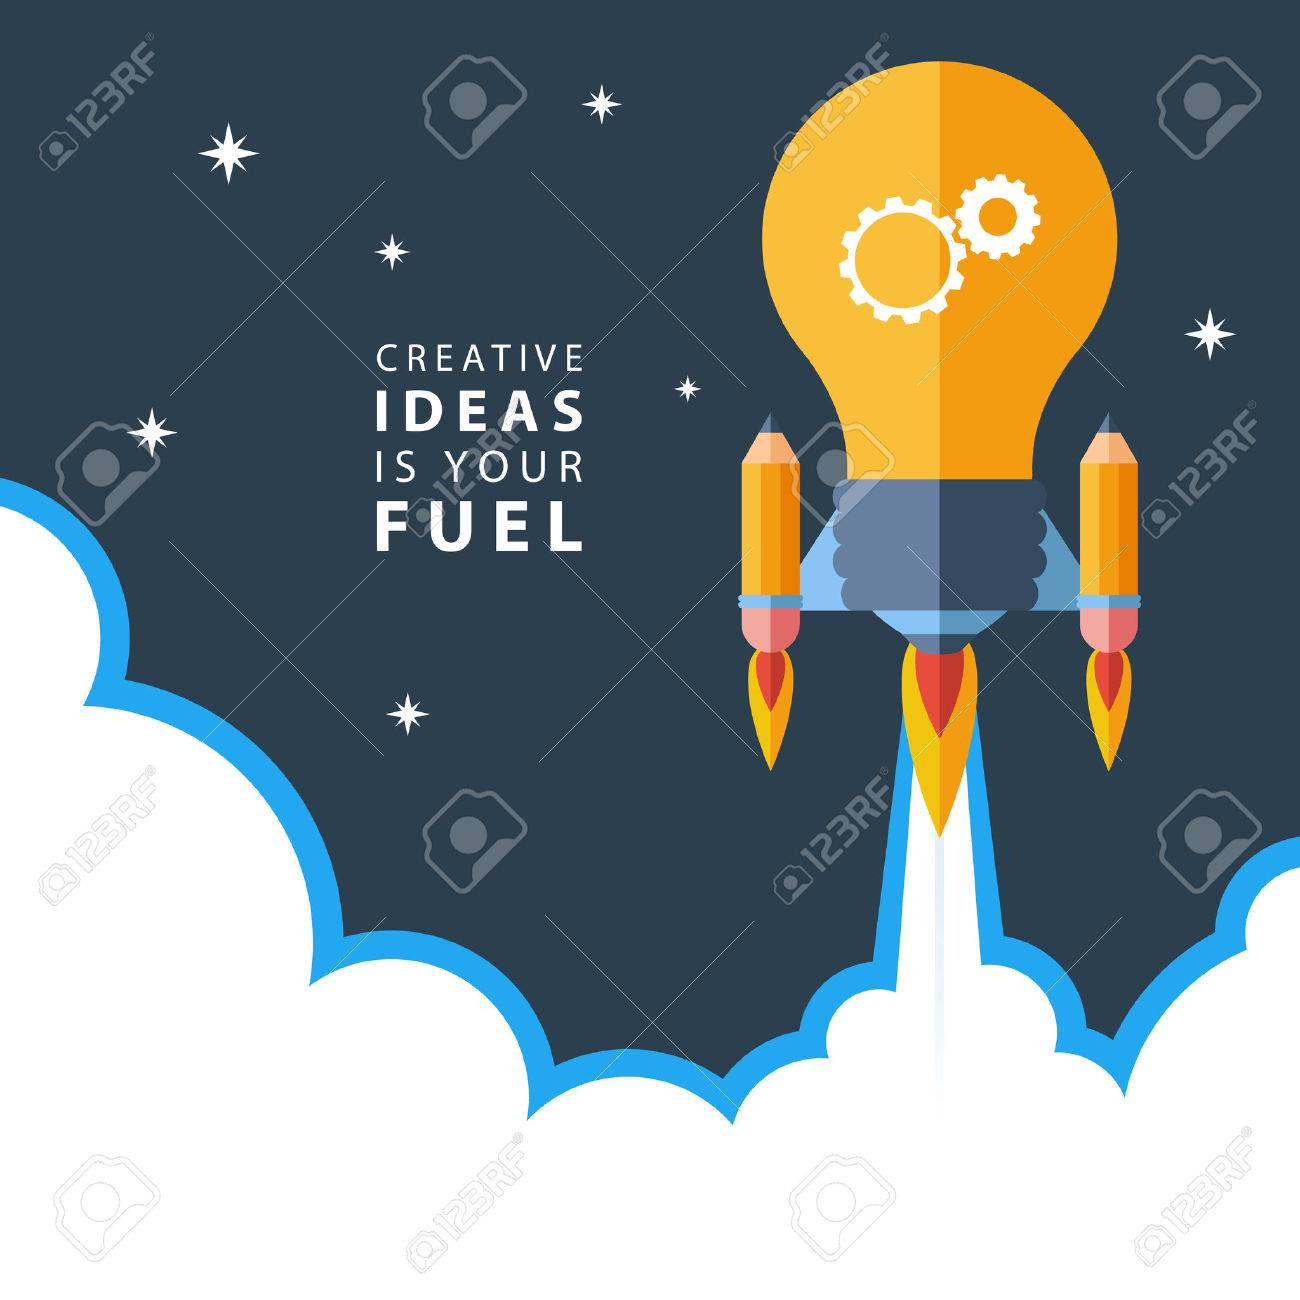 Creative ideas is your fuel. Flat design colorful vector illustration concept for creativity, big idea, creative work, starting new project. Stock Vector - 47178097